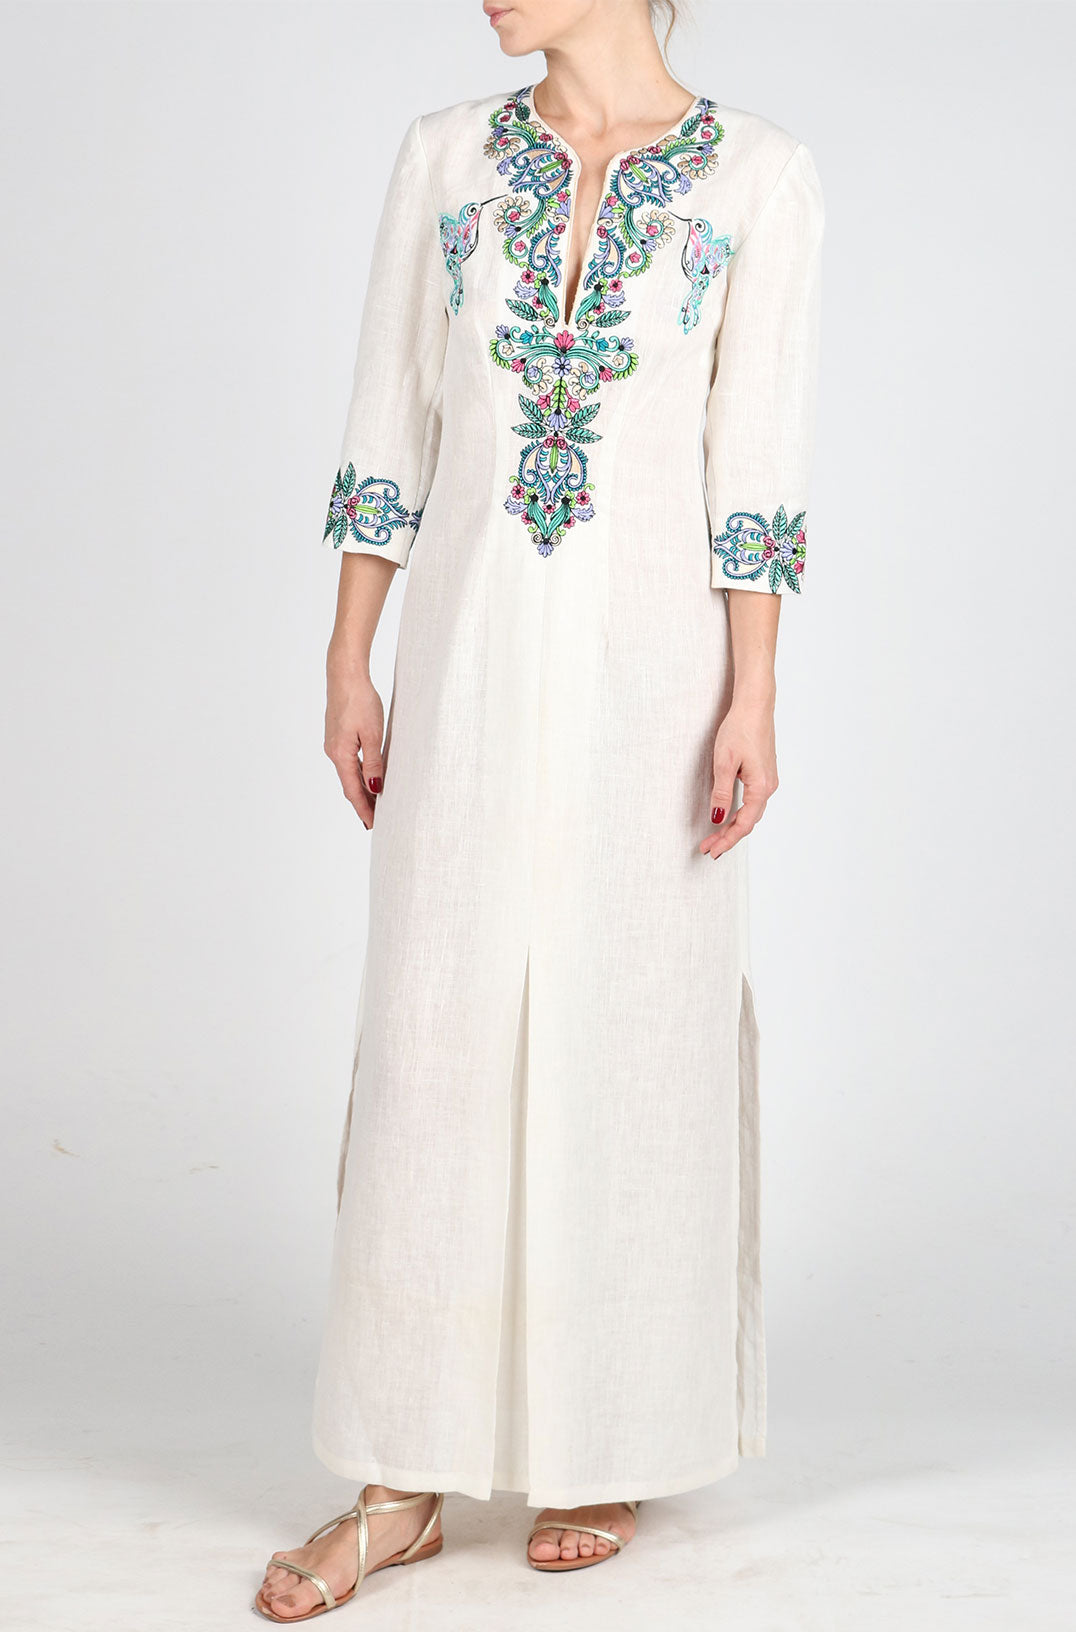 Fanm Mon EVE Cream Linen Green Blue Embroidered Kaftan Dress Vyshyvanka Dress